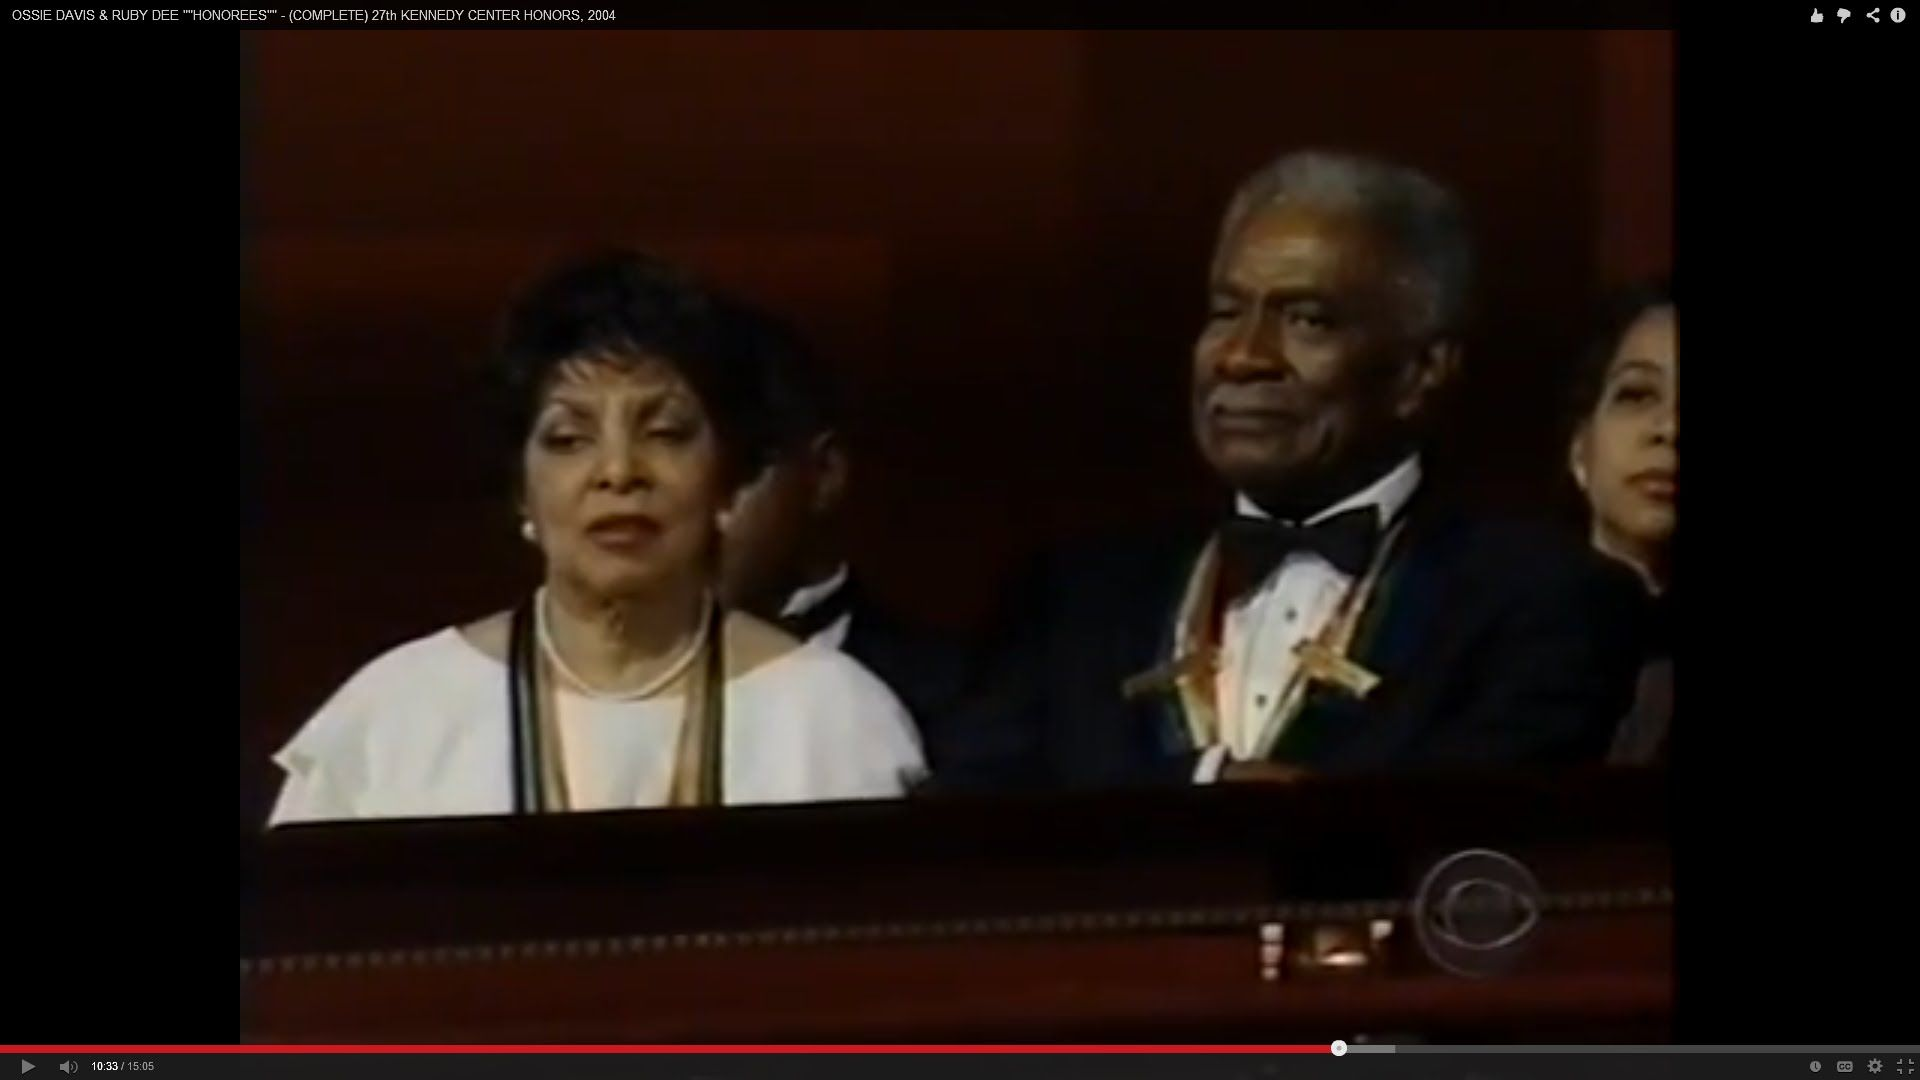 "OSSIE DAVIS & RUBY DEE """"HONOREES"""" - (COMPLETE) 27th KENNEDY CENTER HON..."